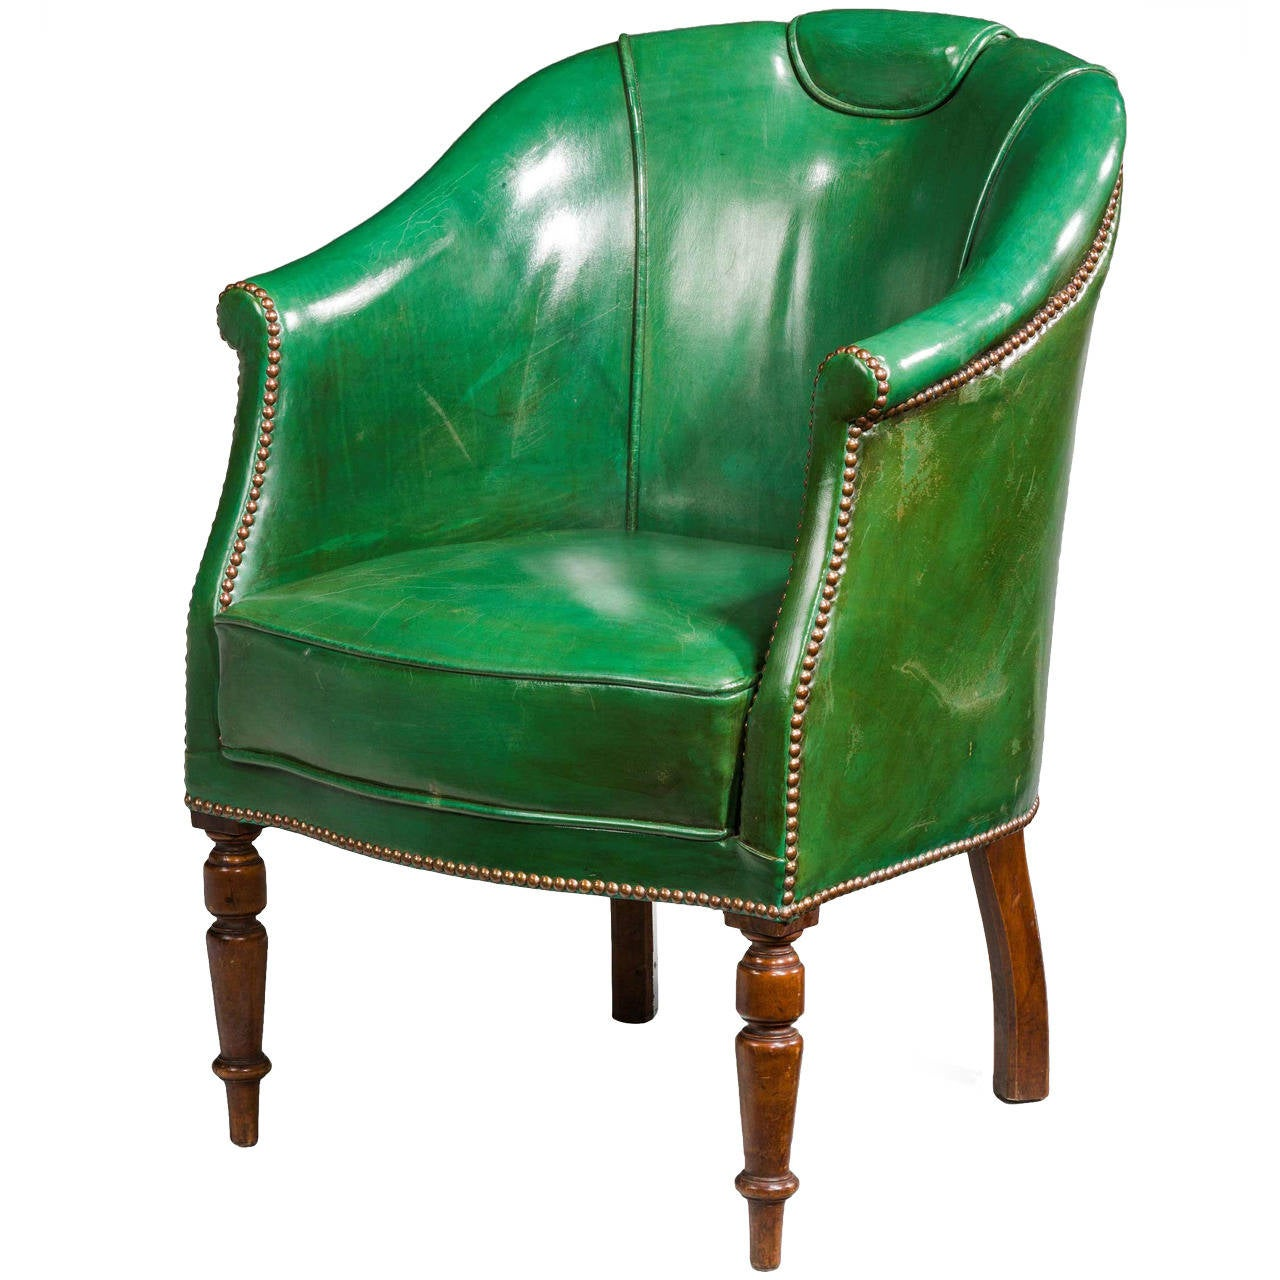 green computer chair gaiam balance ball 19th century leather at 1stdibs